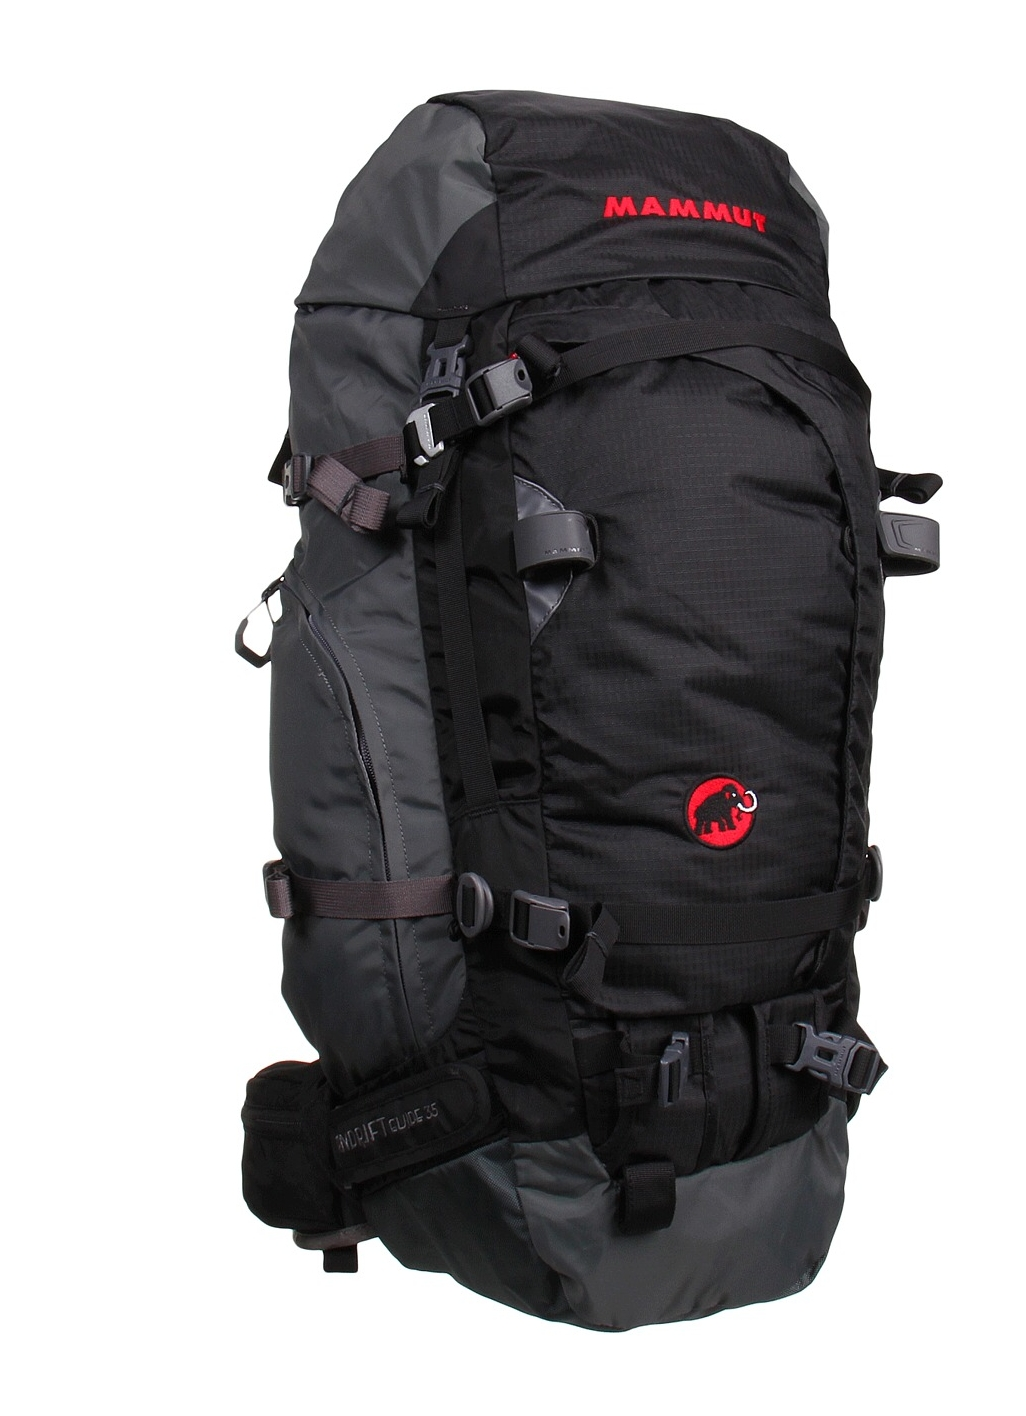 closer at classic styles top quality backpack Mammut Spindrift Guide 35 L - Black/Smoke ...